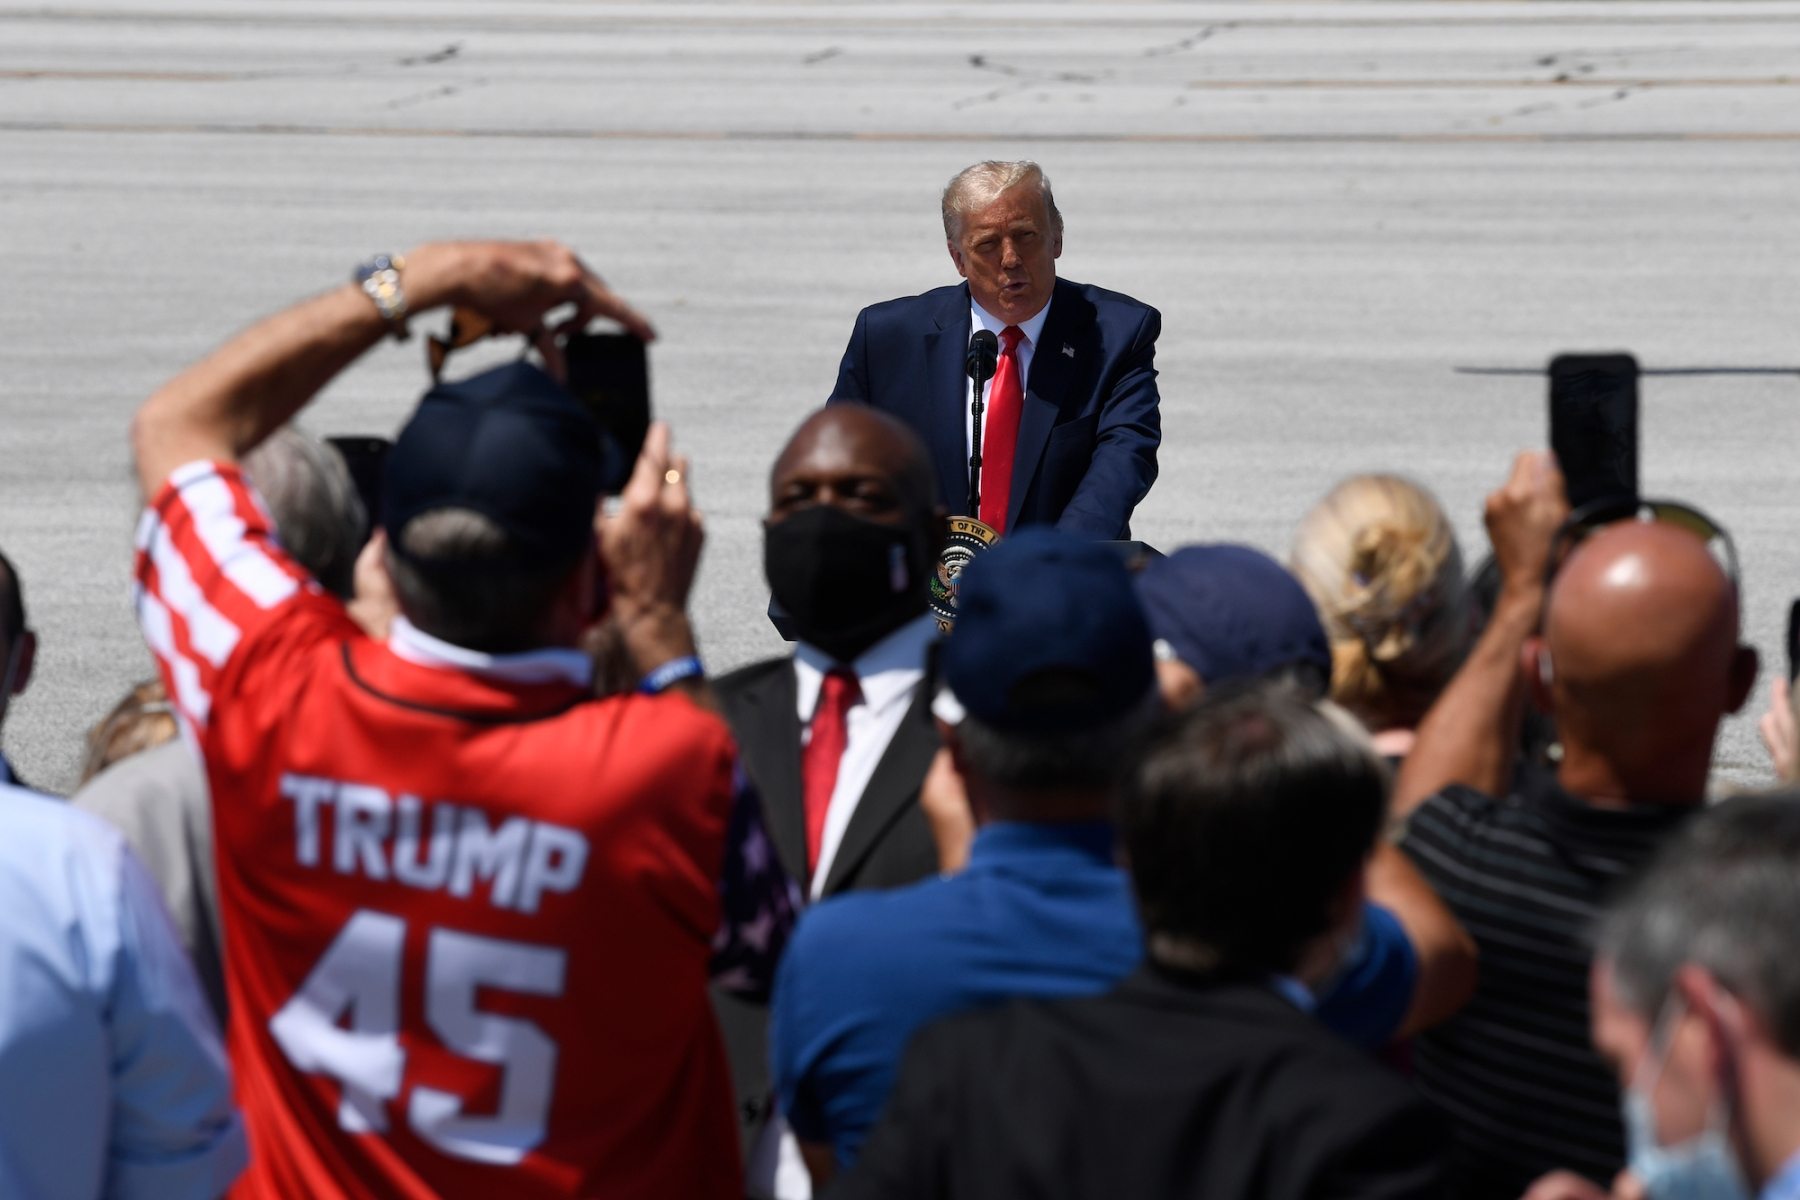 Trump Claims Biden is 'Against God' and Will 'Hurt the Bible and Hurt God'